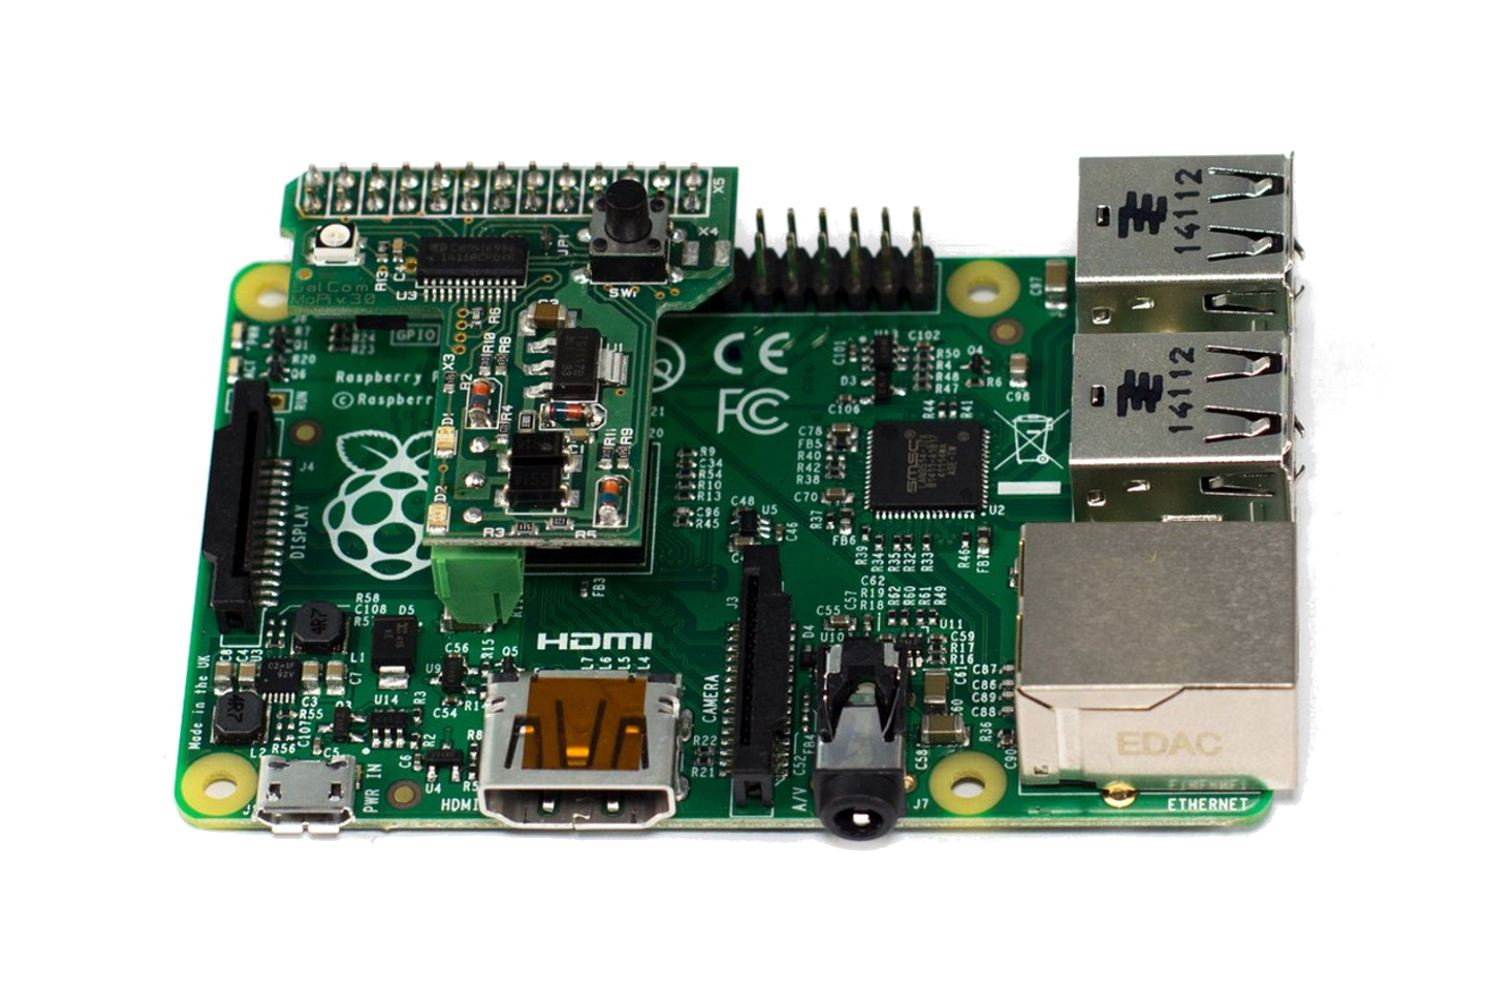 How To Power The Raspberry Pi Build Usb Injector For External Hard Drives Circuit Mopi